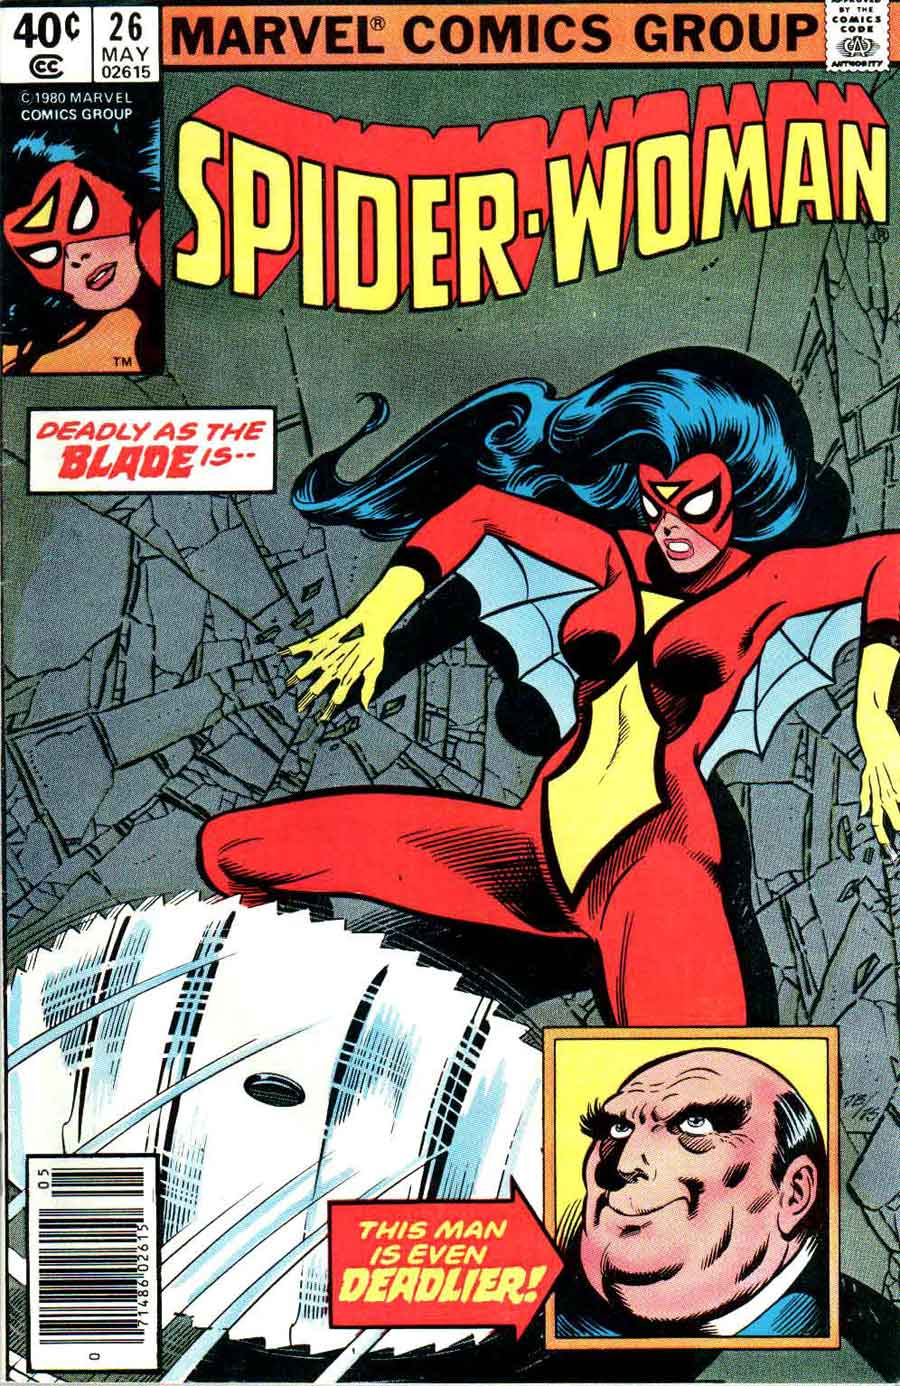 Spider-woman #26, 1980 - An awkwardly posed super-heroine braces herself ...